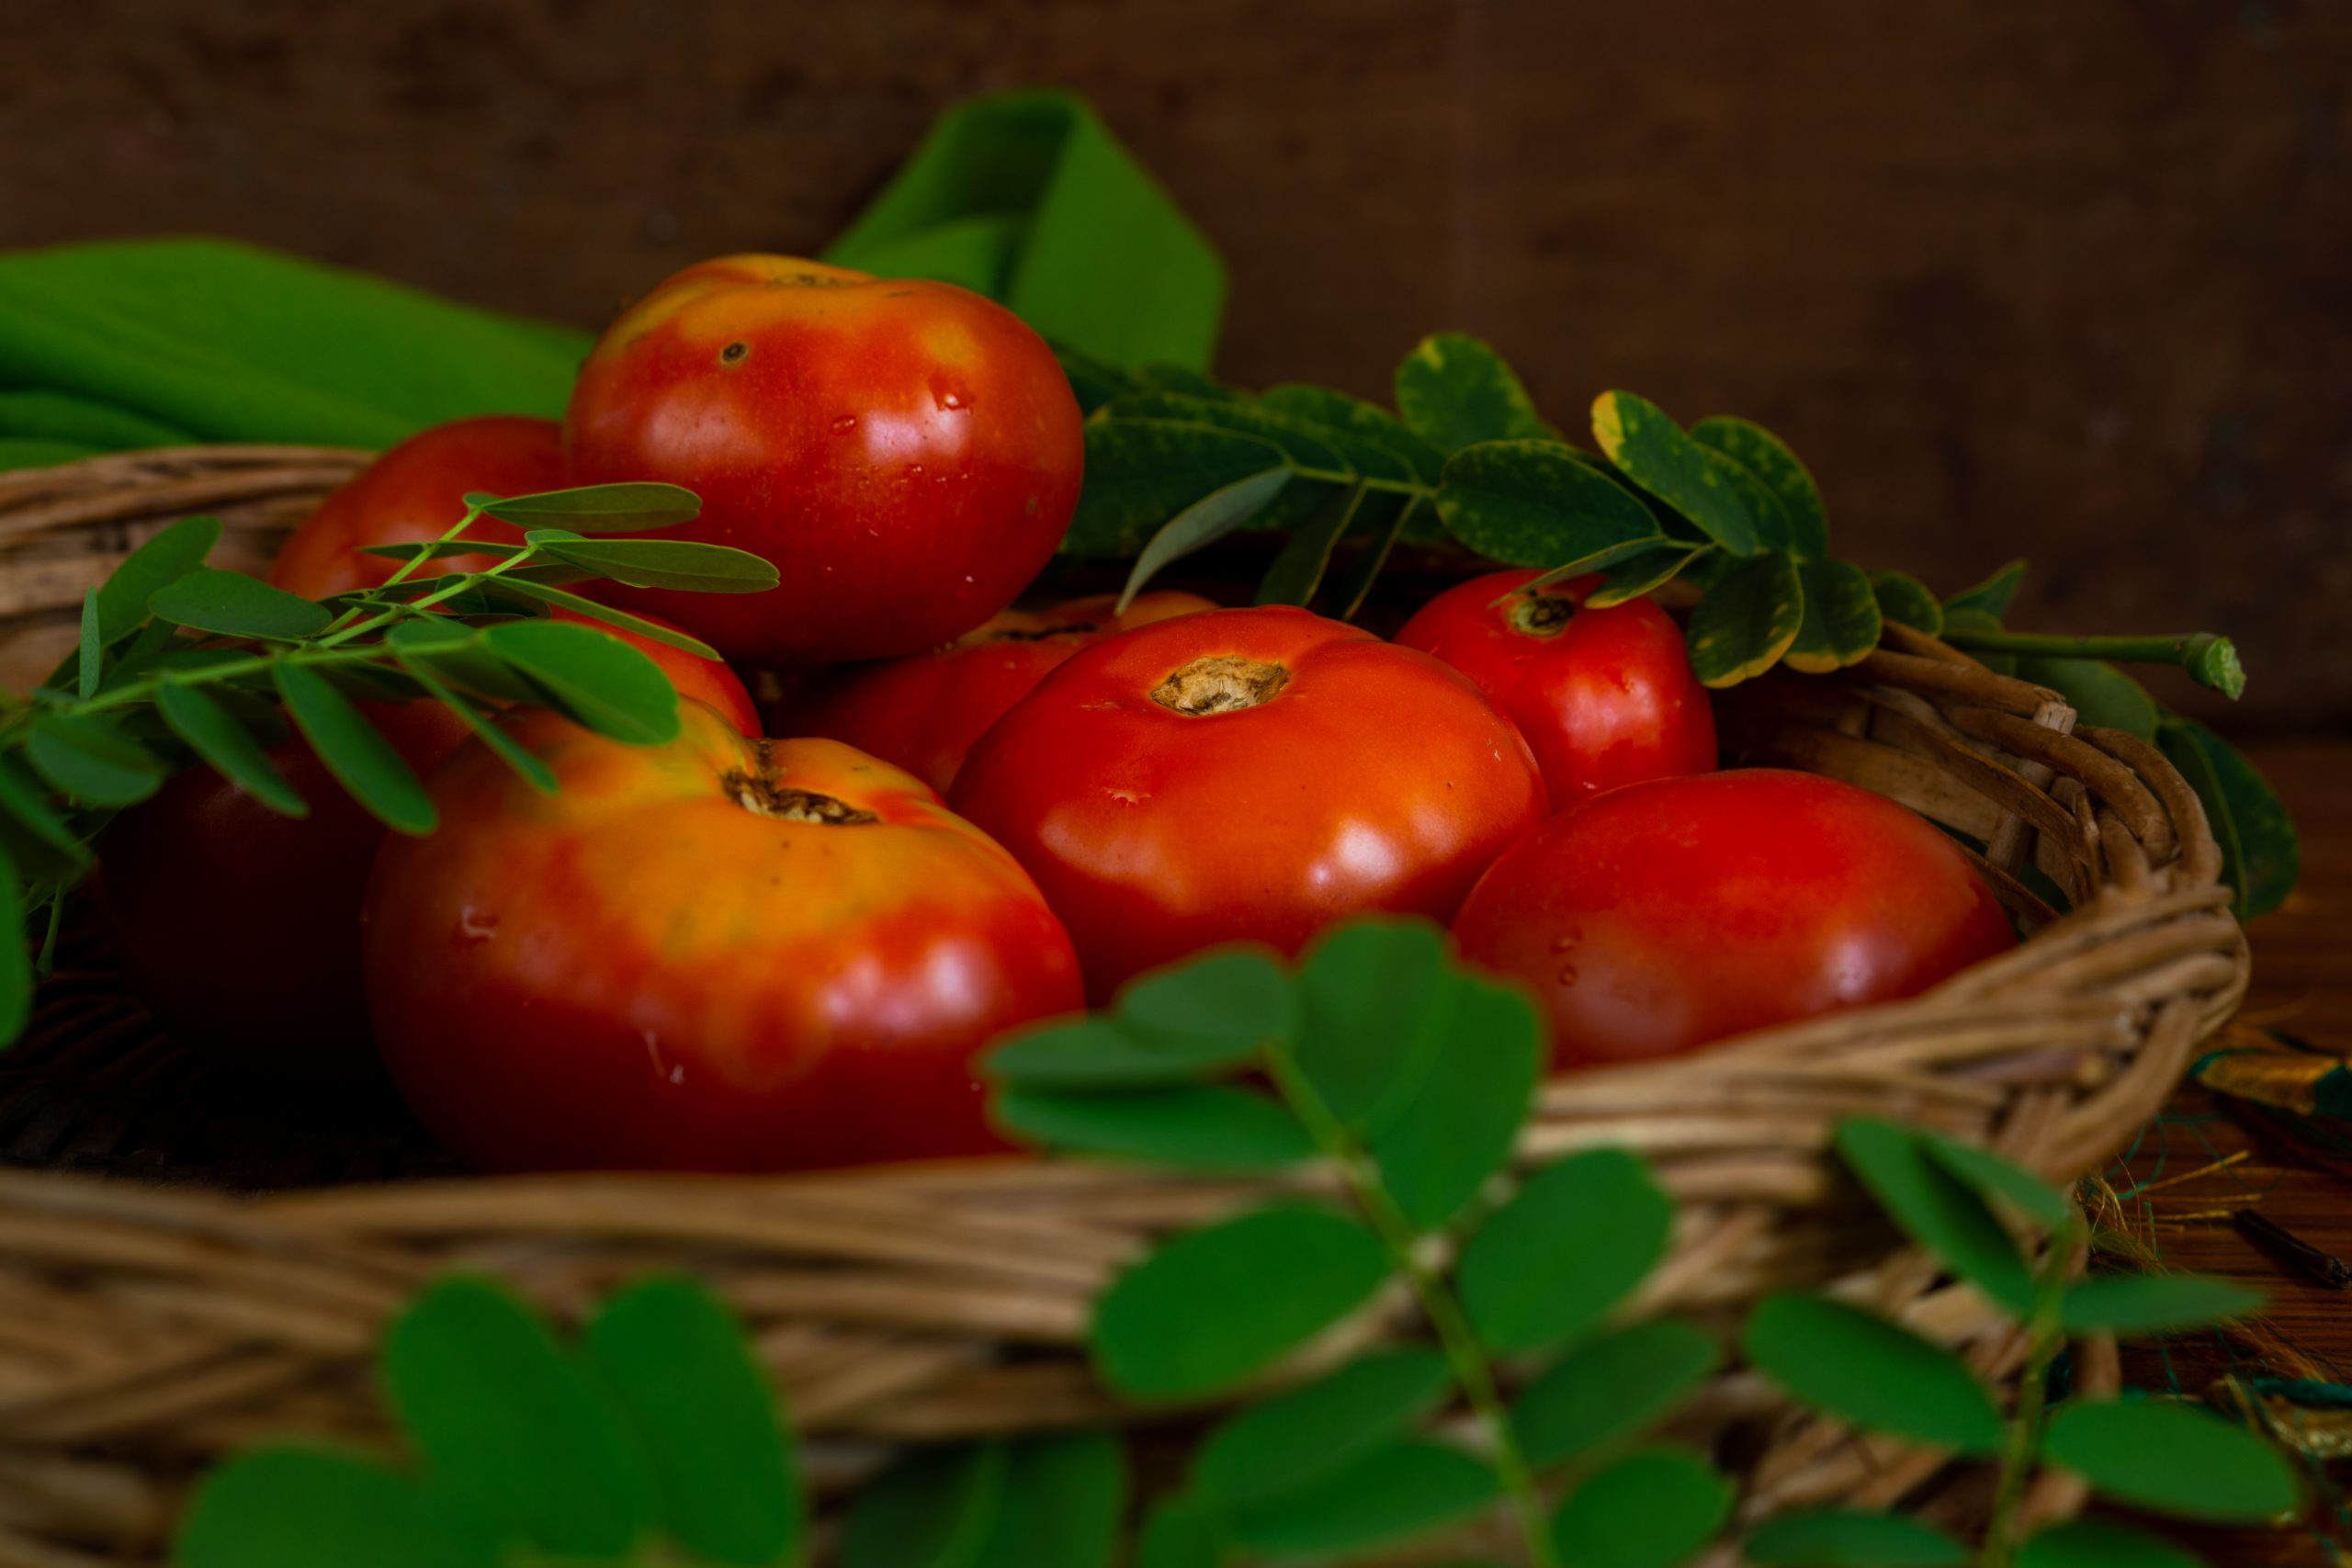 Red tomatoes in a basket